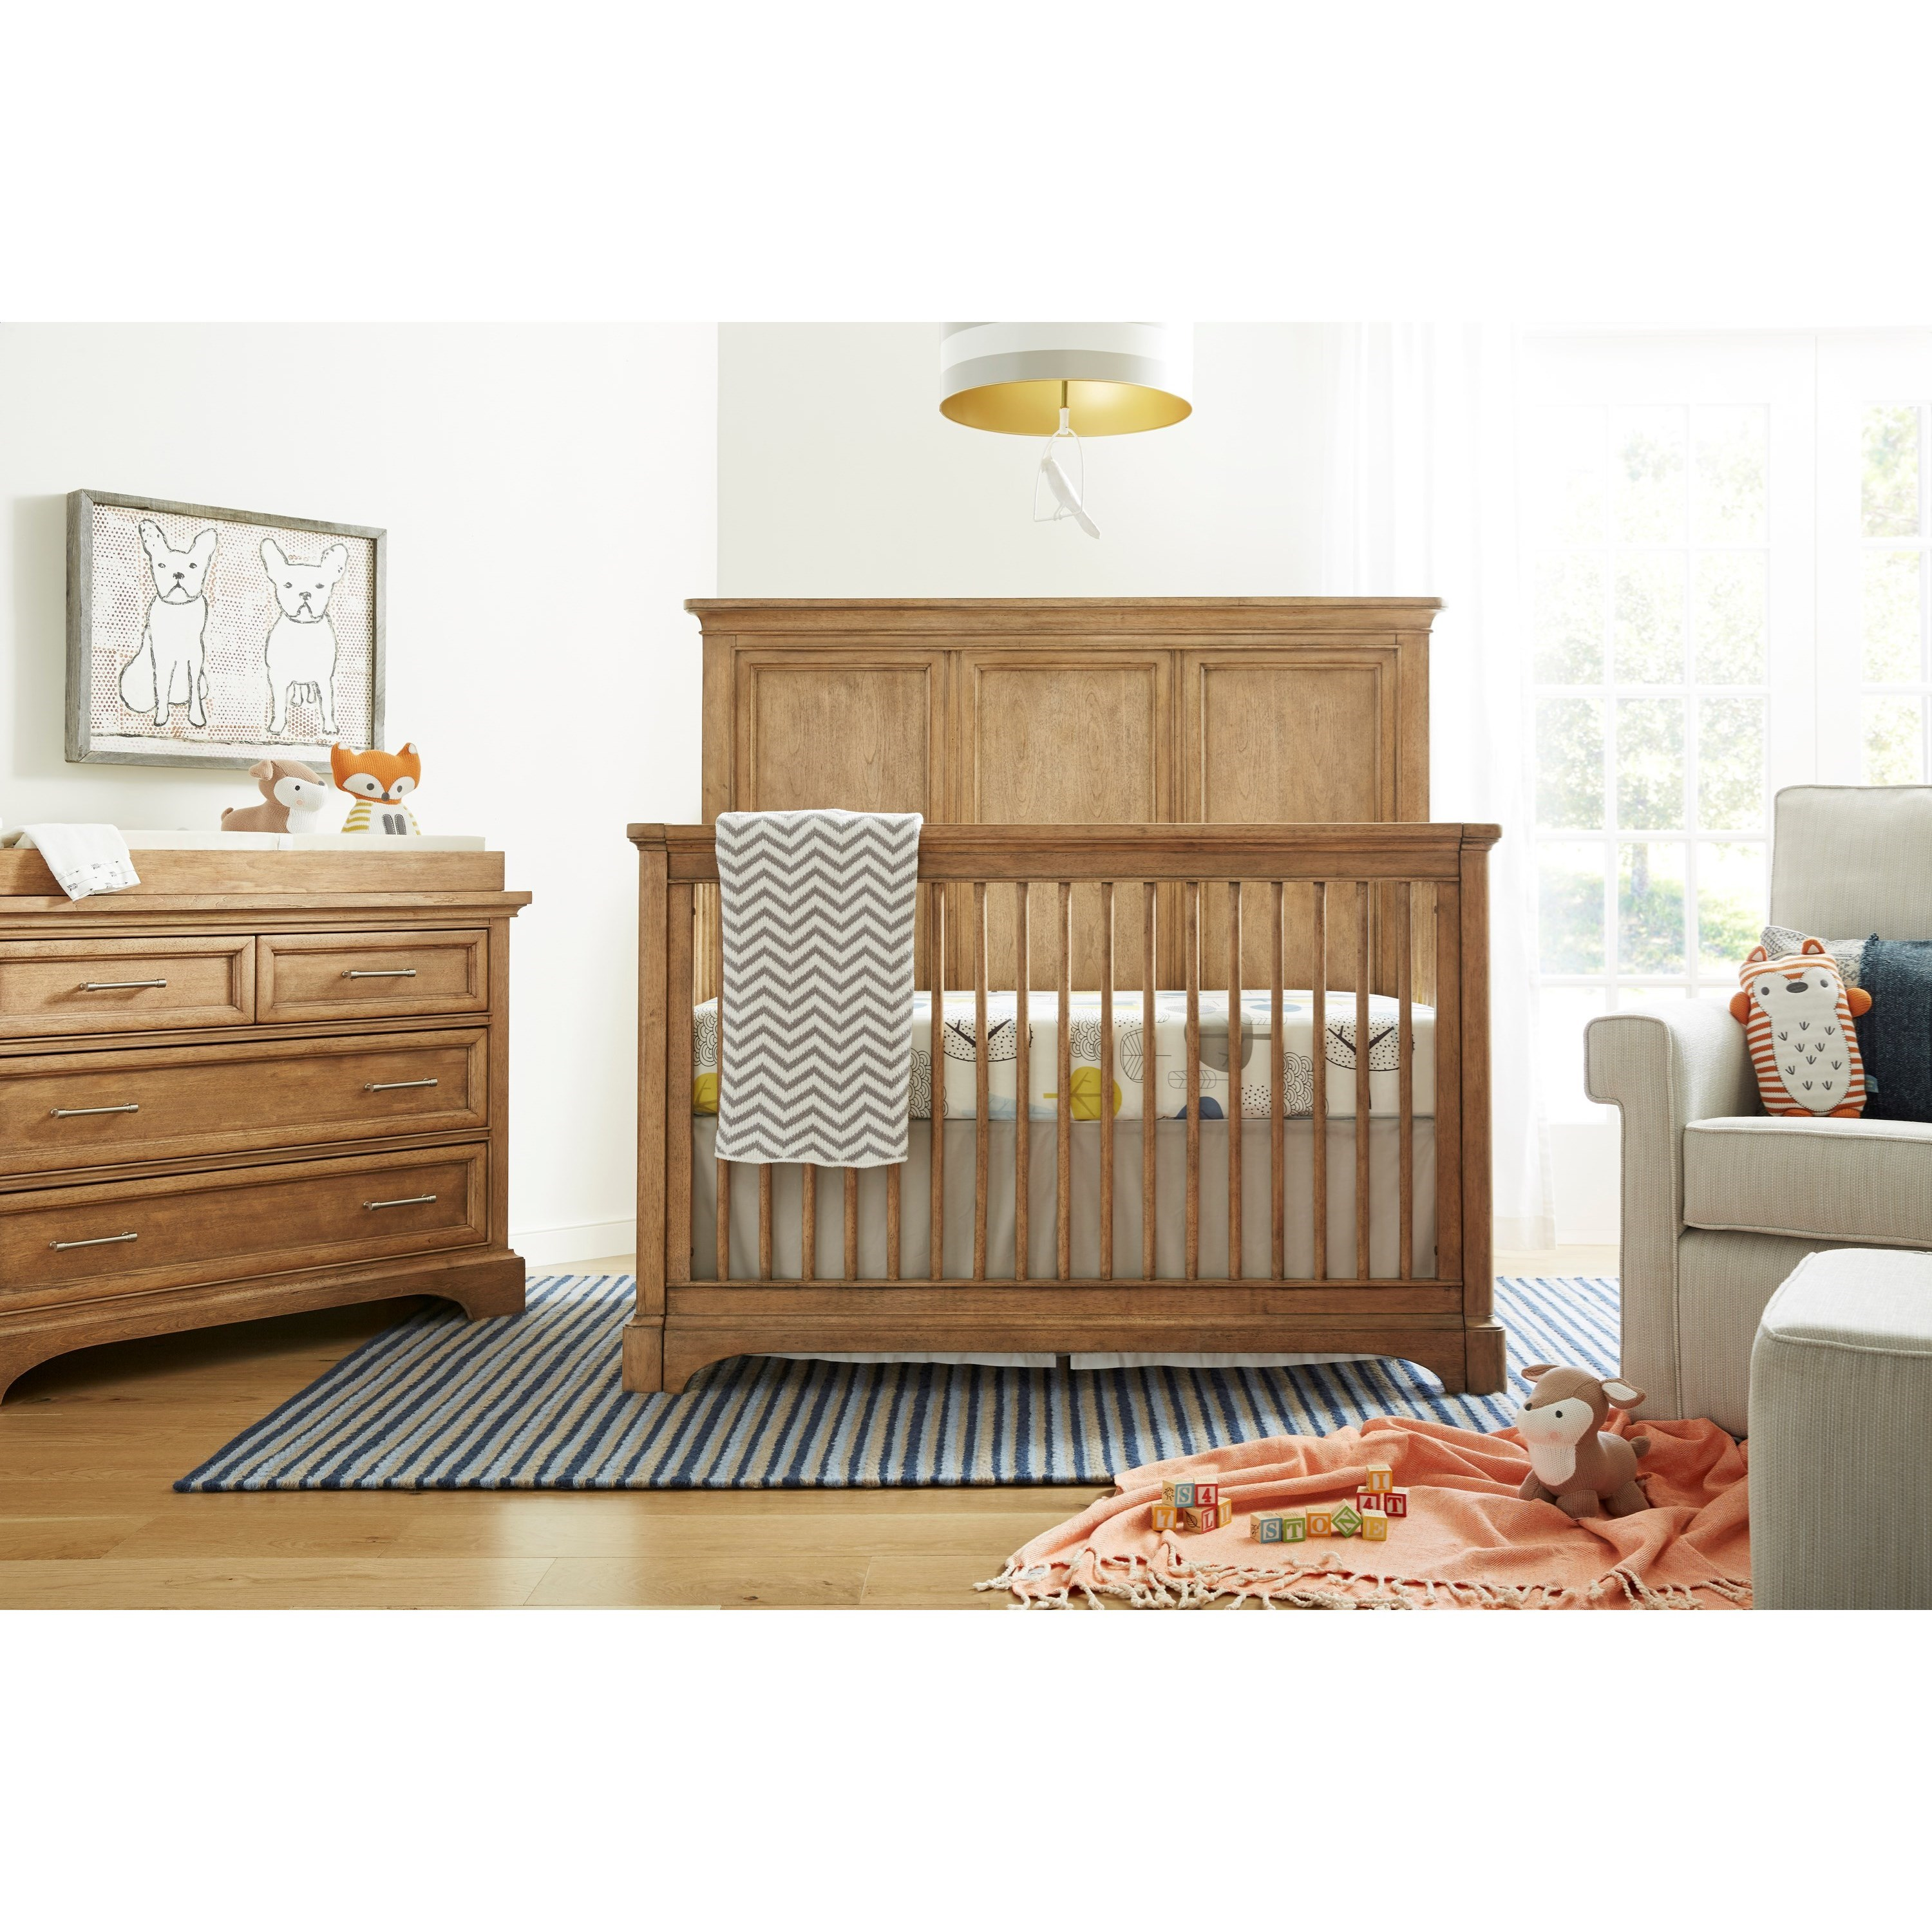 Stone & Leigh Furniture Chelsea Square Crib Bedroom Group - Item Number: 584-63 C Bedroom Group 1